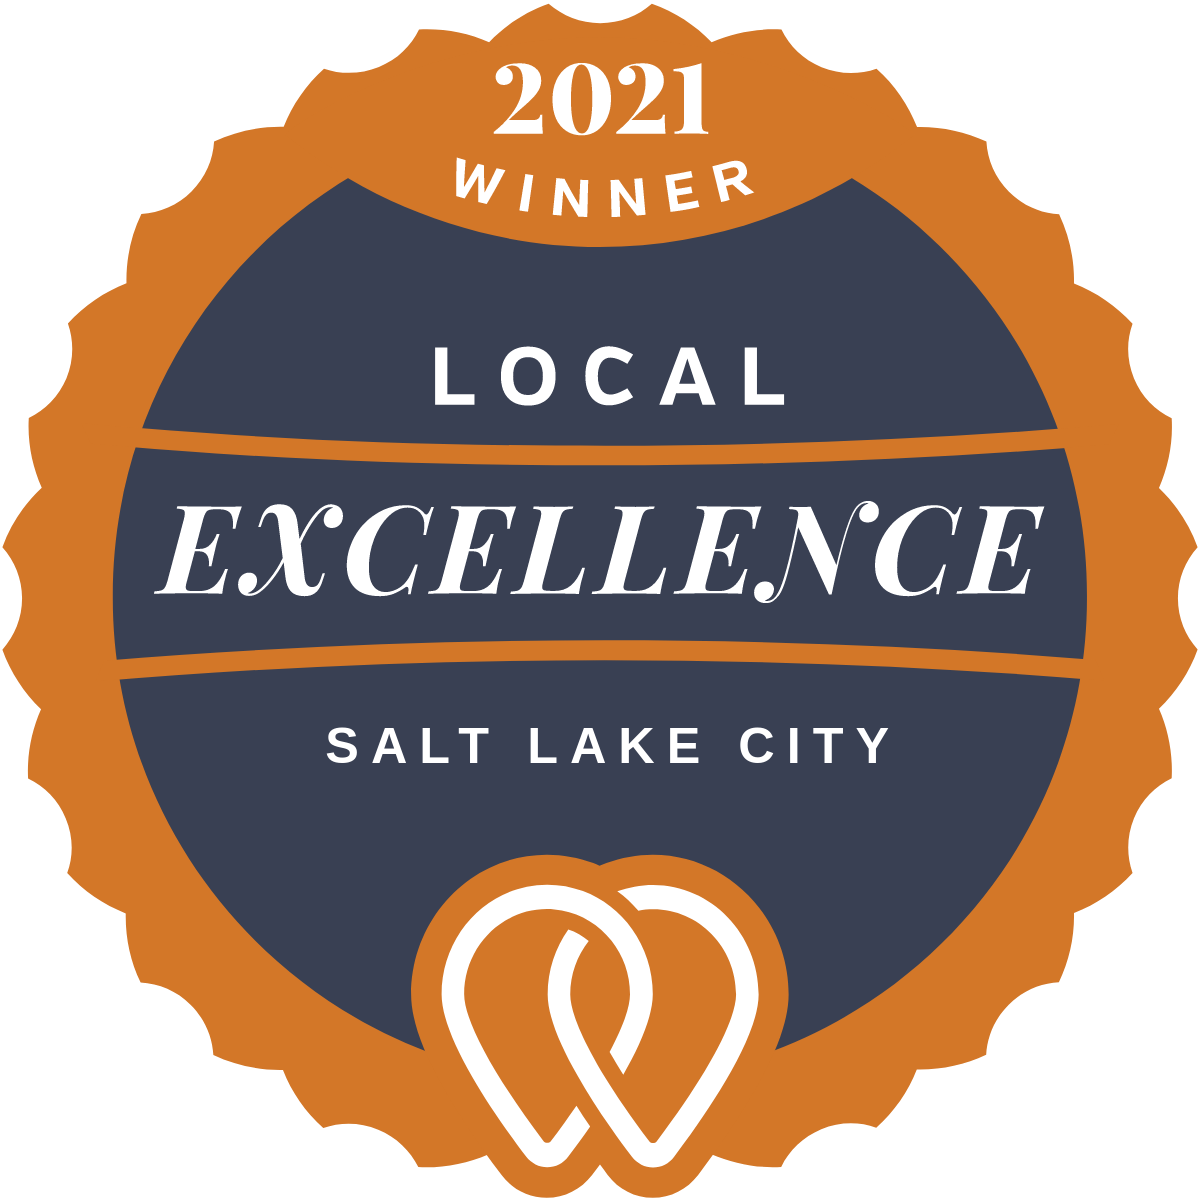 2021 UpCity Local Excellence SEO Company Winner in Salt Lake City, Utah